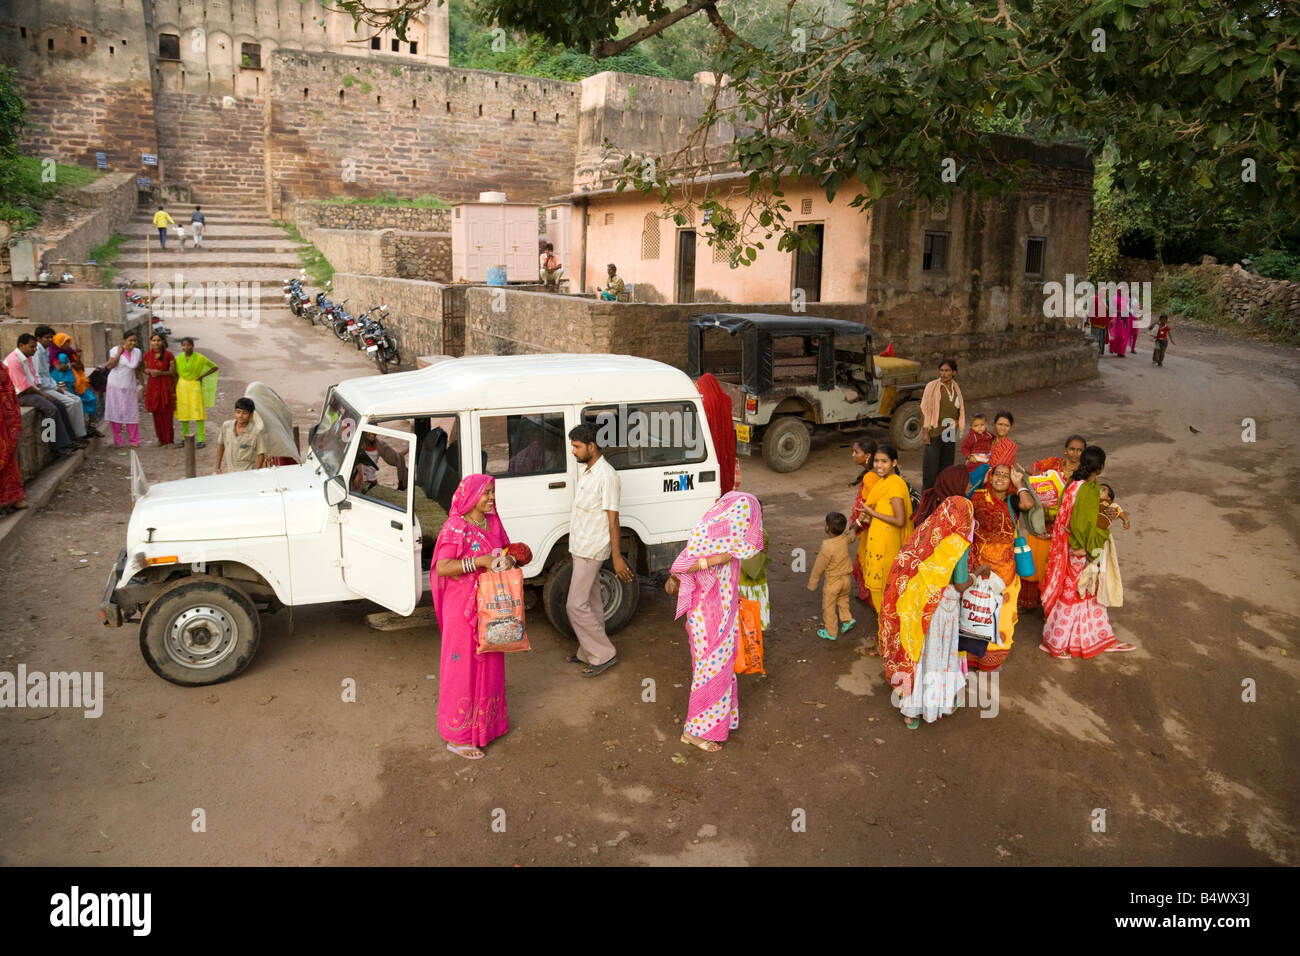 Indian women in colourful saris arrive at the temple, Ranthambore fort, Rajasthan, India - Stock Image